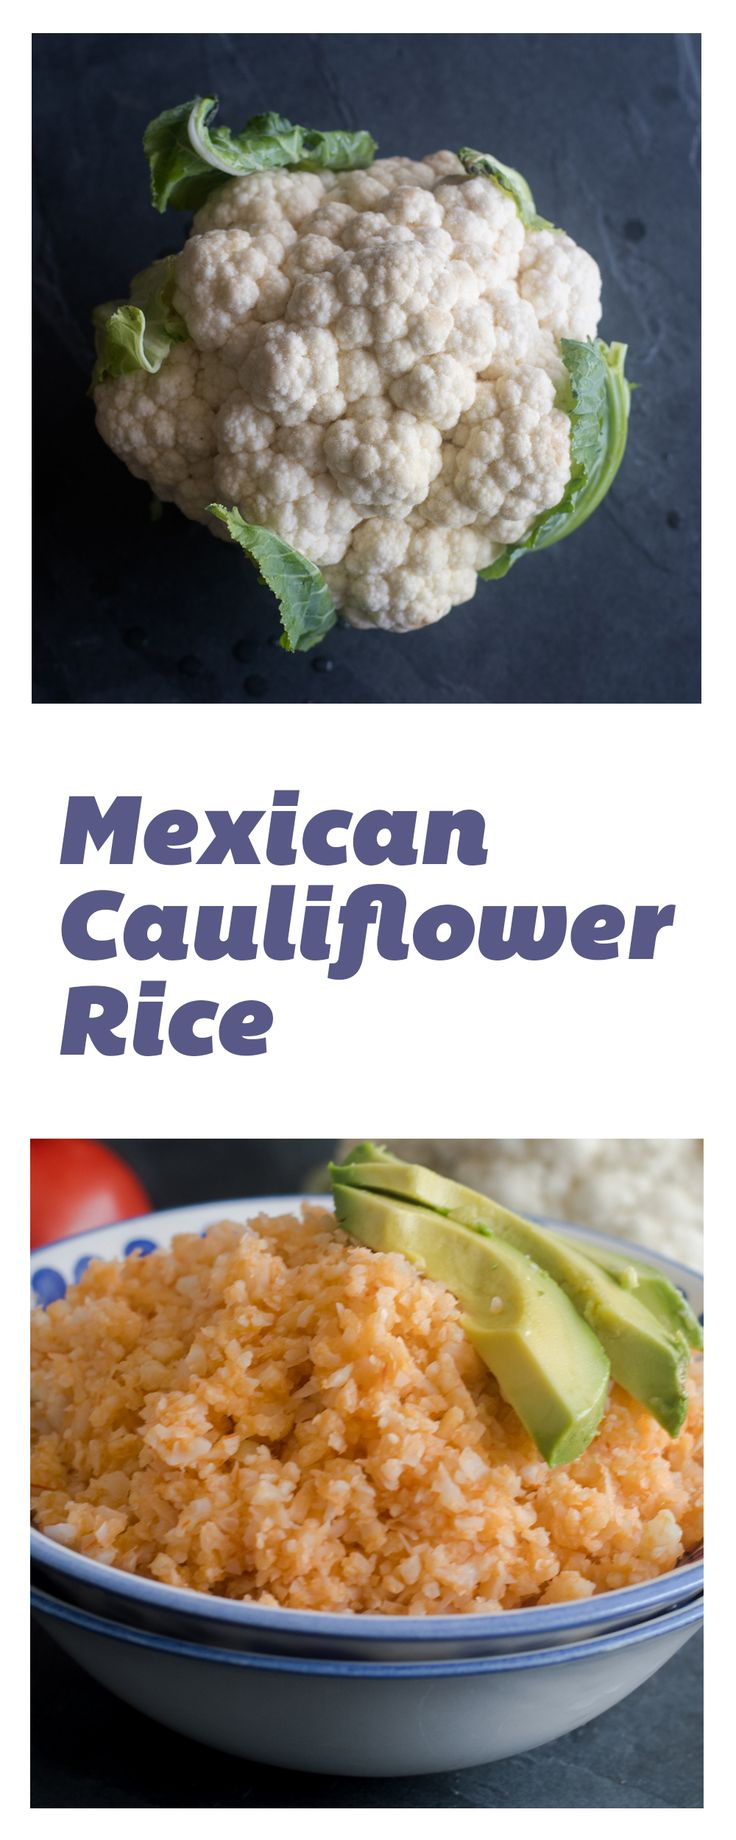 Mexican Cauliflower Rice is healthy low-carb version of the classic Mexican Red Rice recipe. It's a healthy, nutritious Mexican side dish.